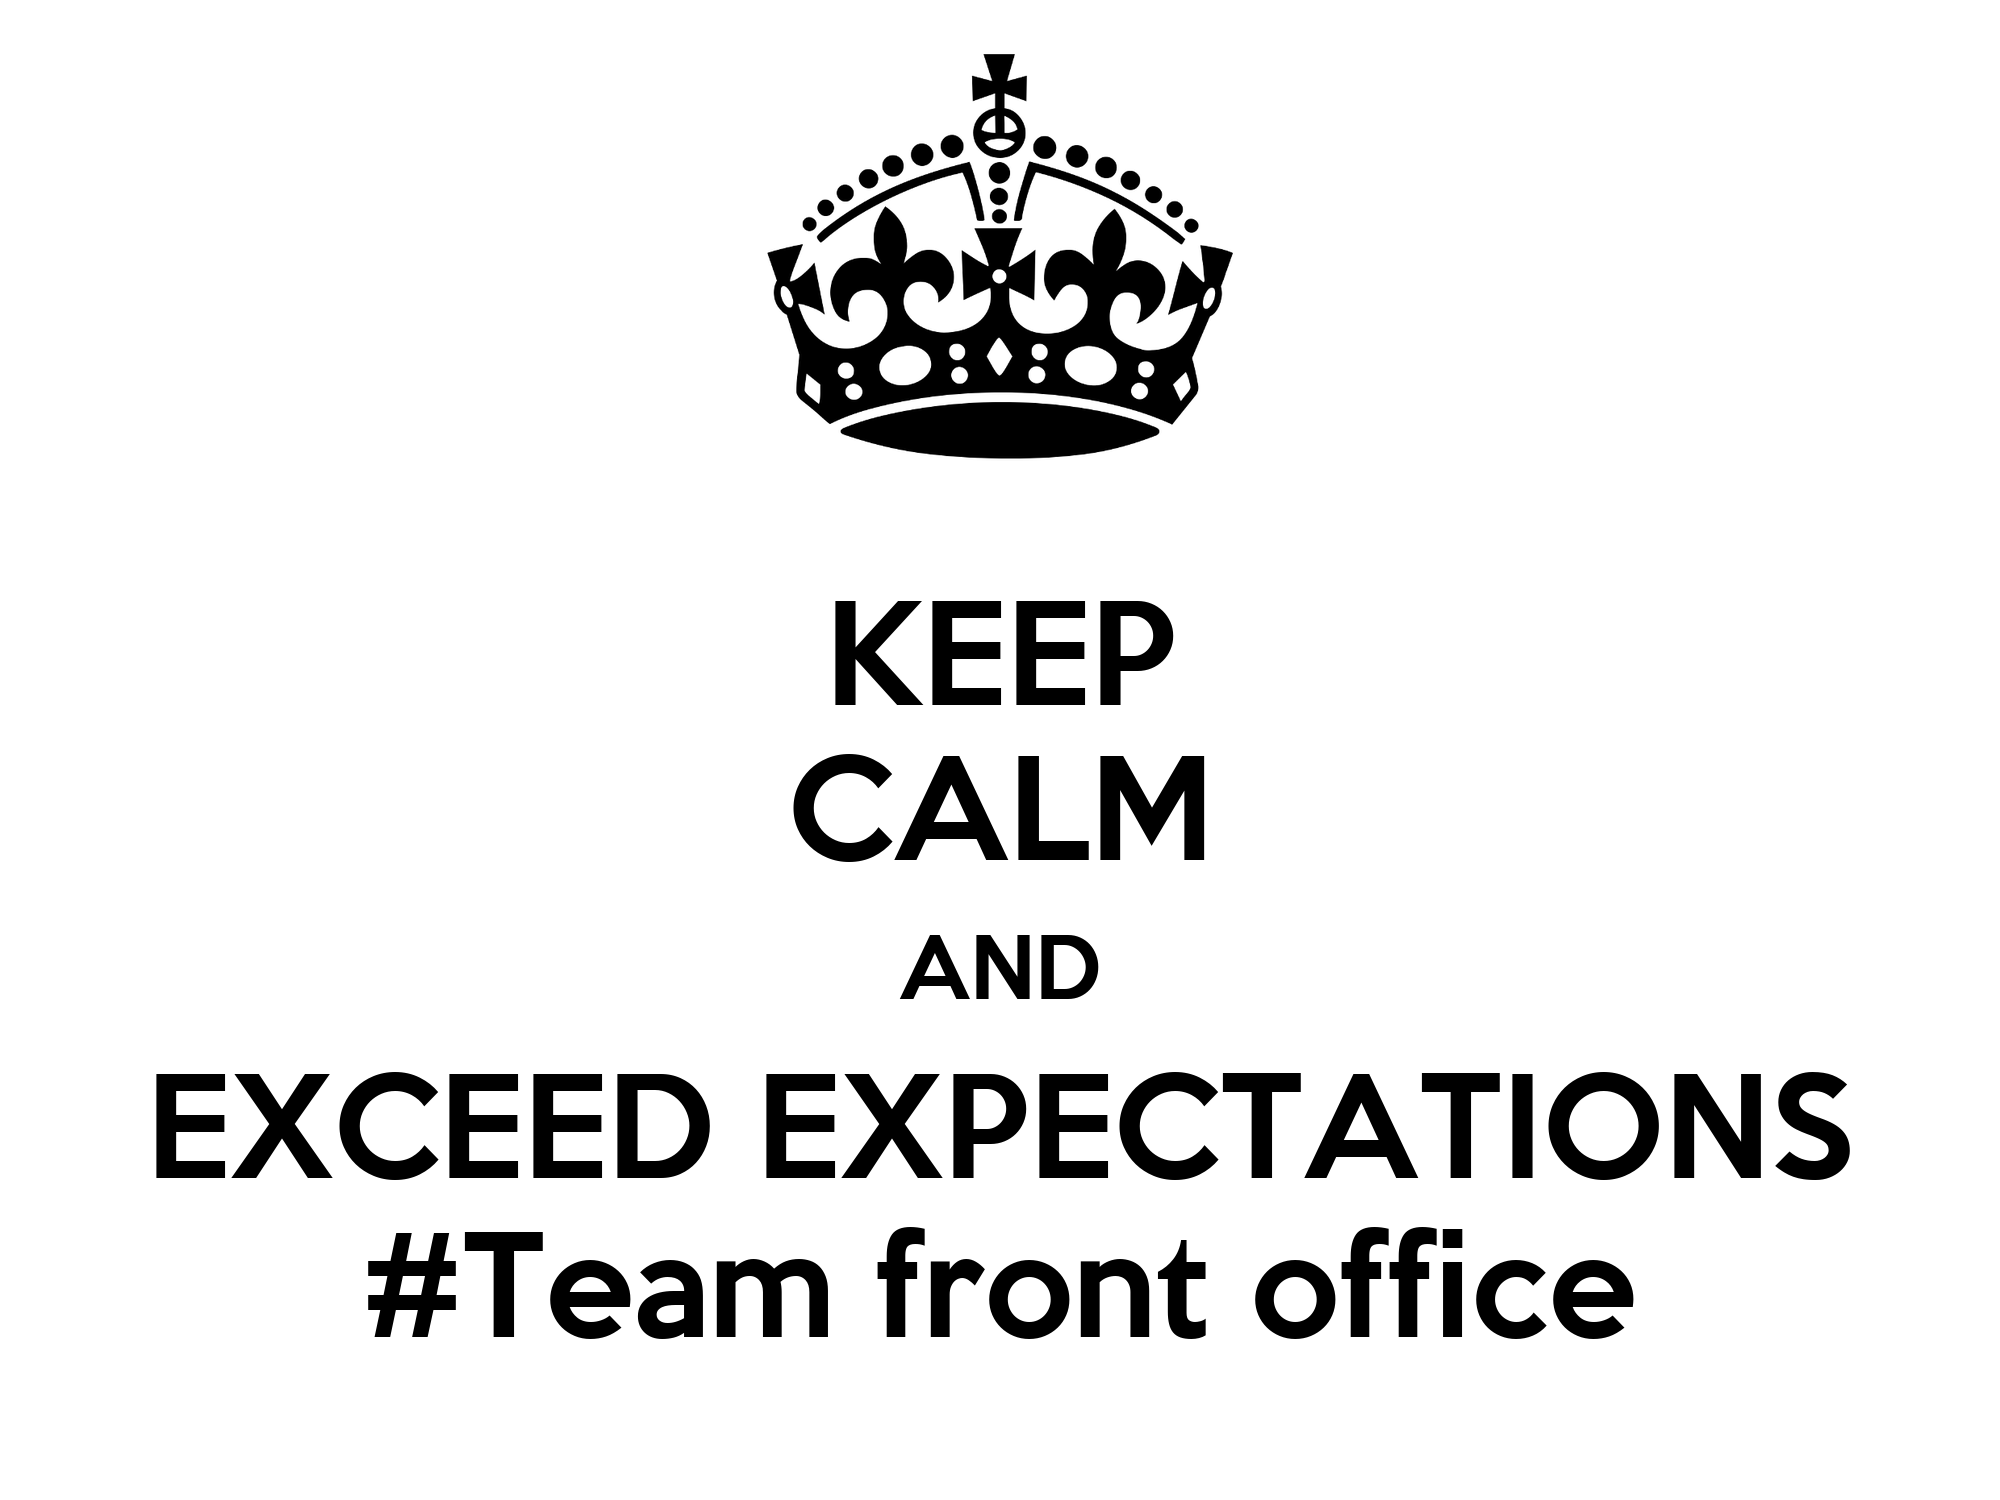 KEEP CALM AND EXCEED EXPECTATIONS #Team front office